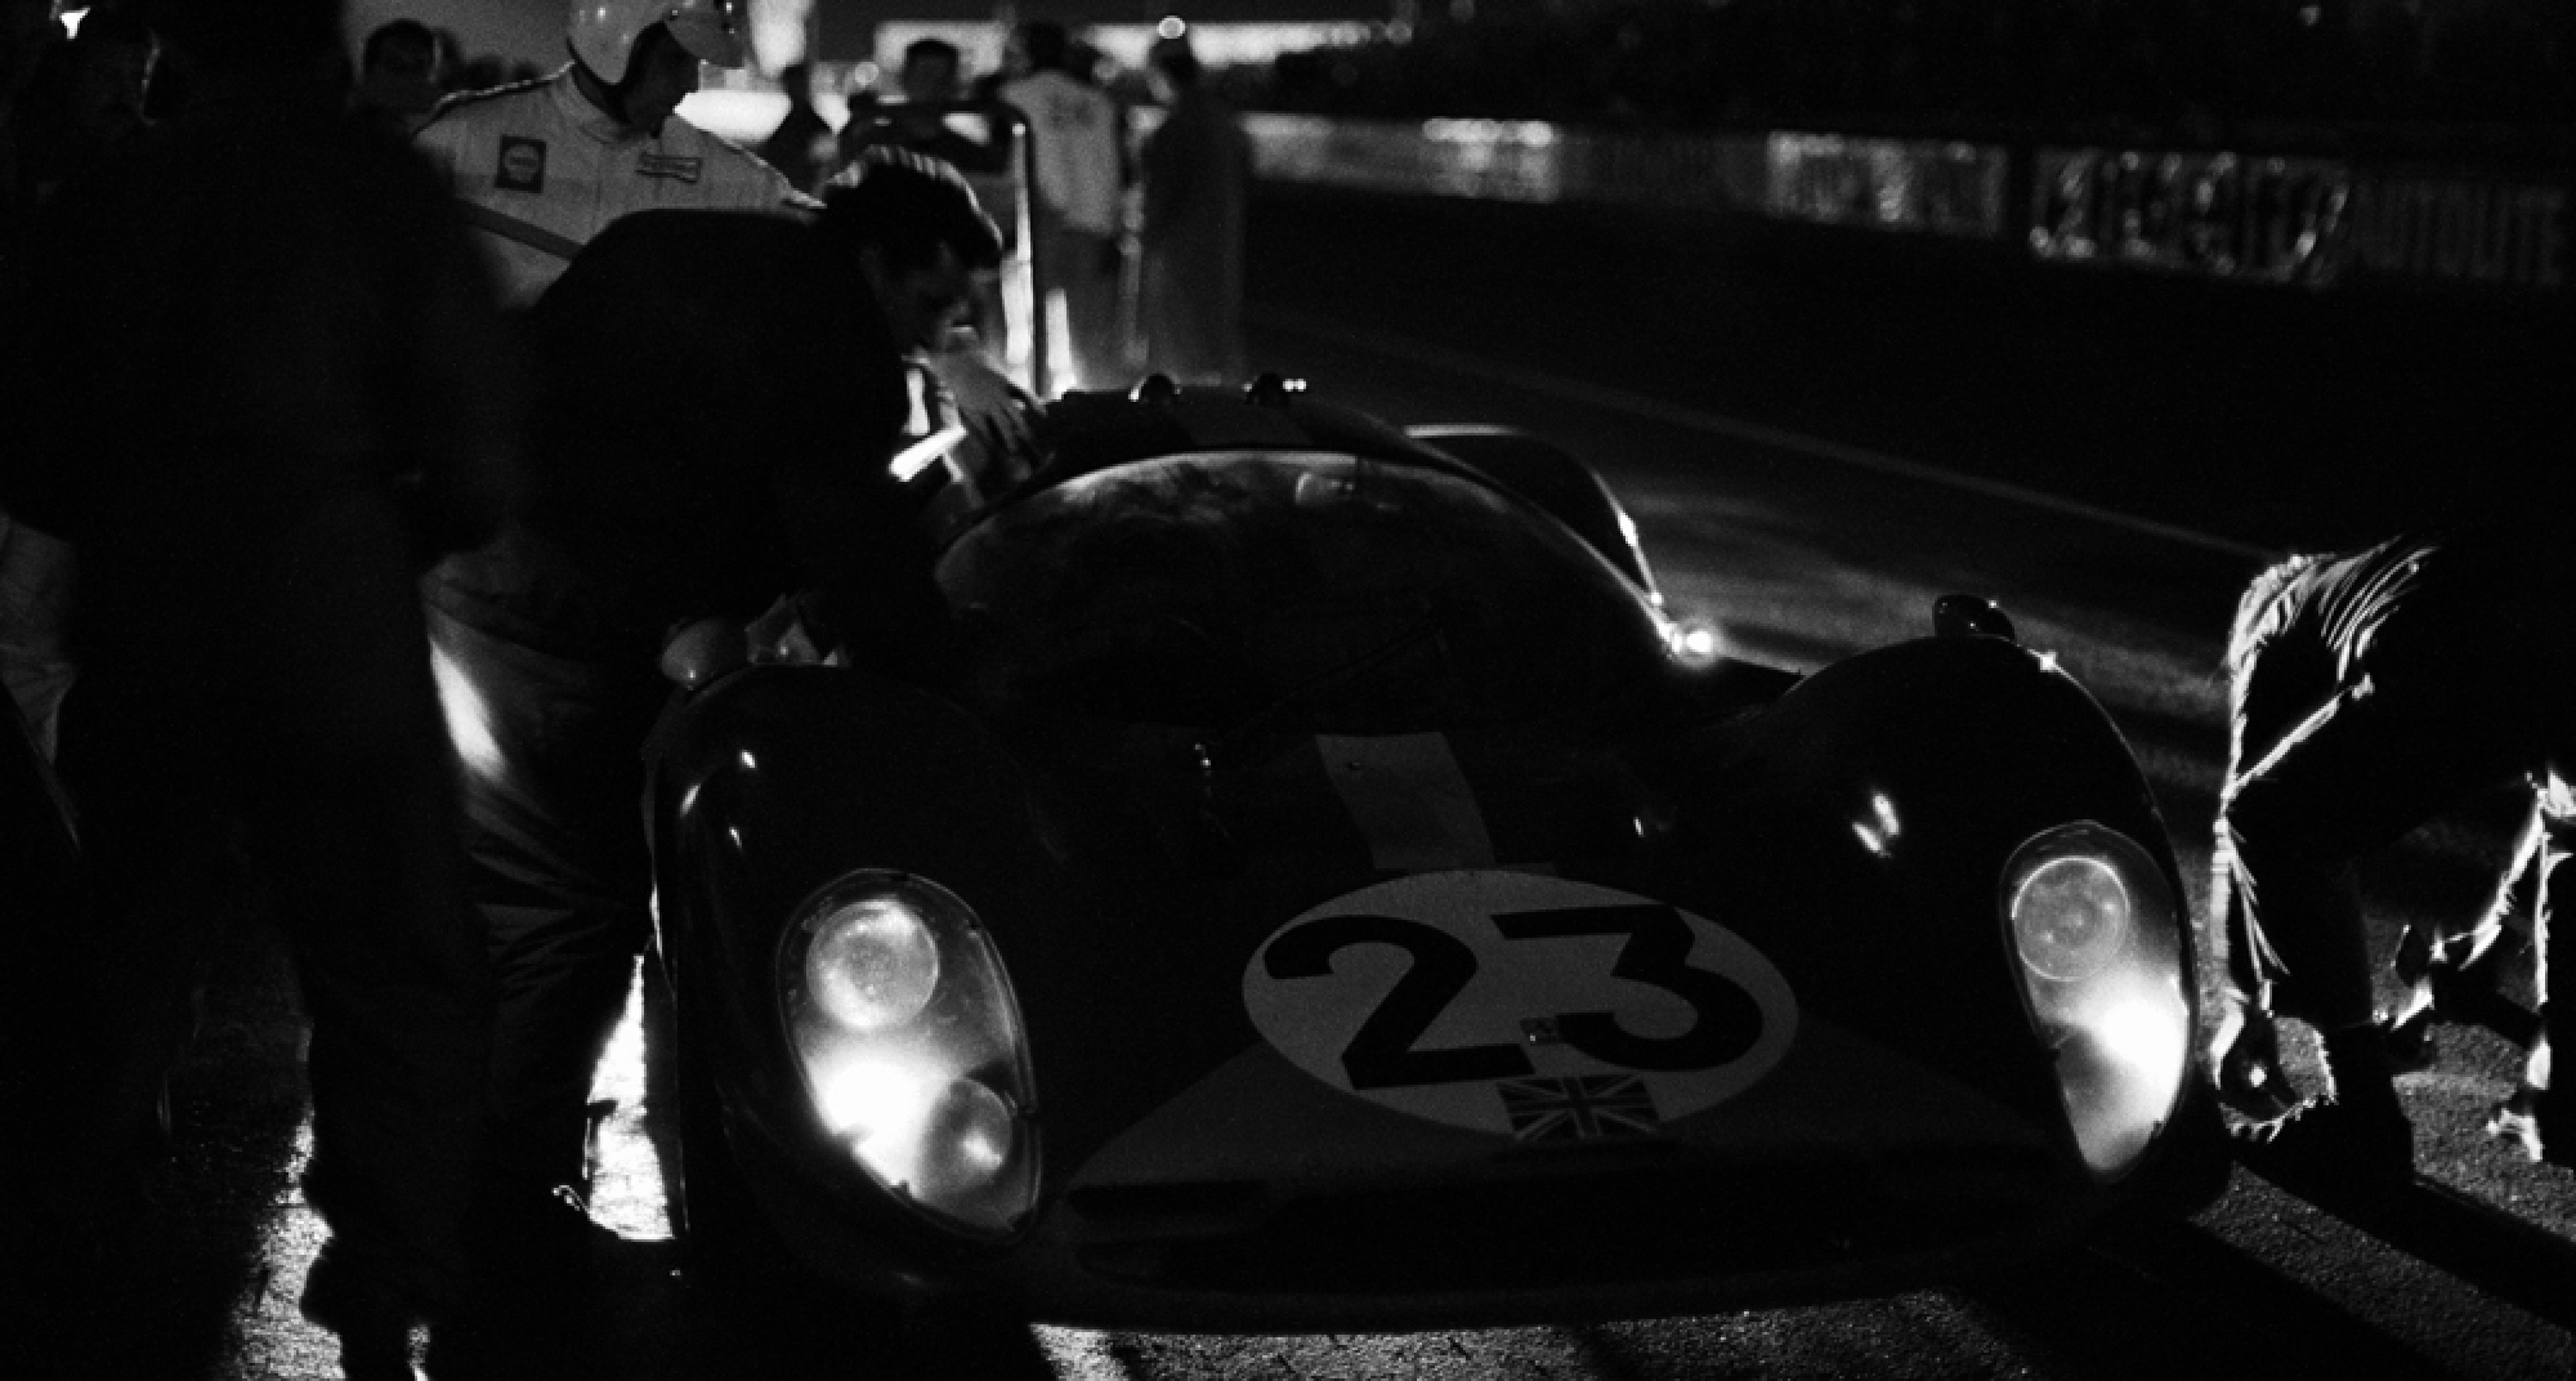 Nighly pit stop of Richard Attwood's (GB) and Piers Courage's (GB) Ferrari 330P3/4 Contributor4 entered by Maranello Concessionnaires, Le Mans, France, 10 June 1967.